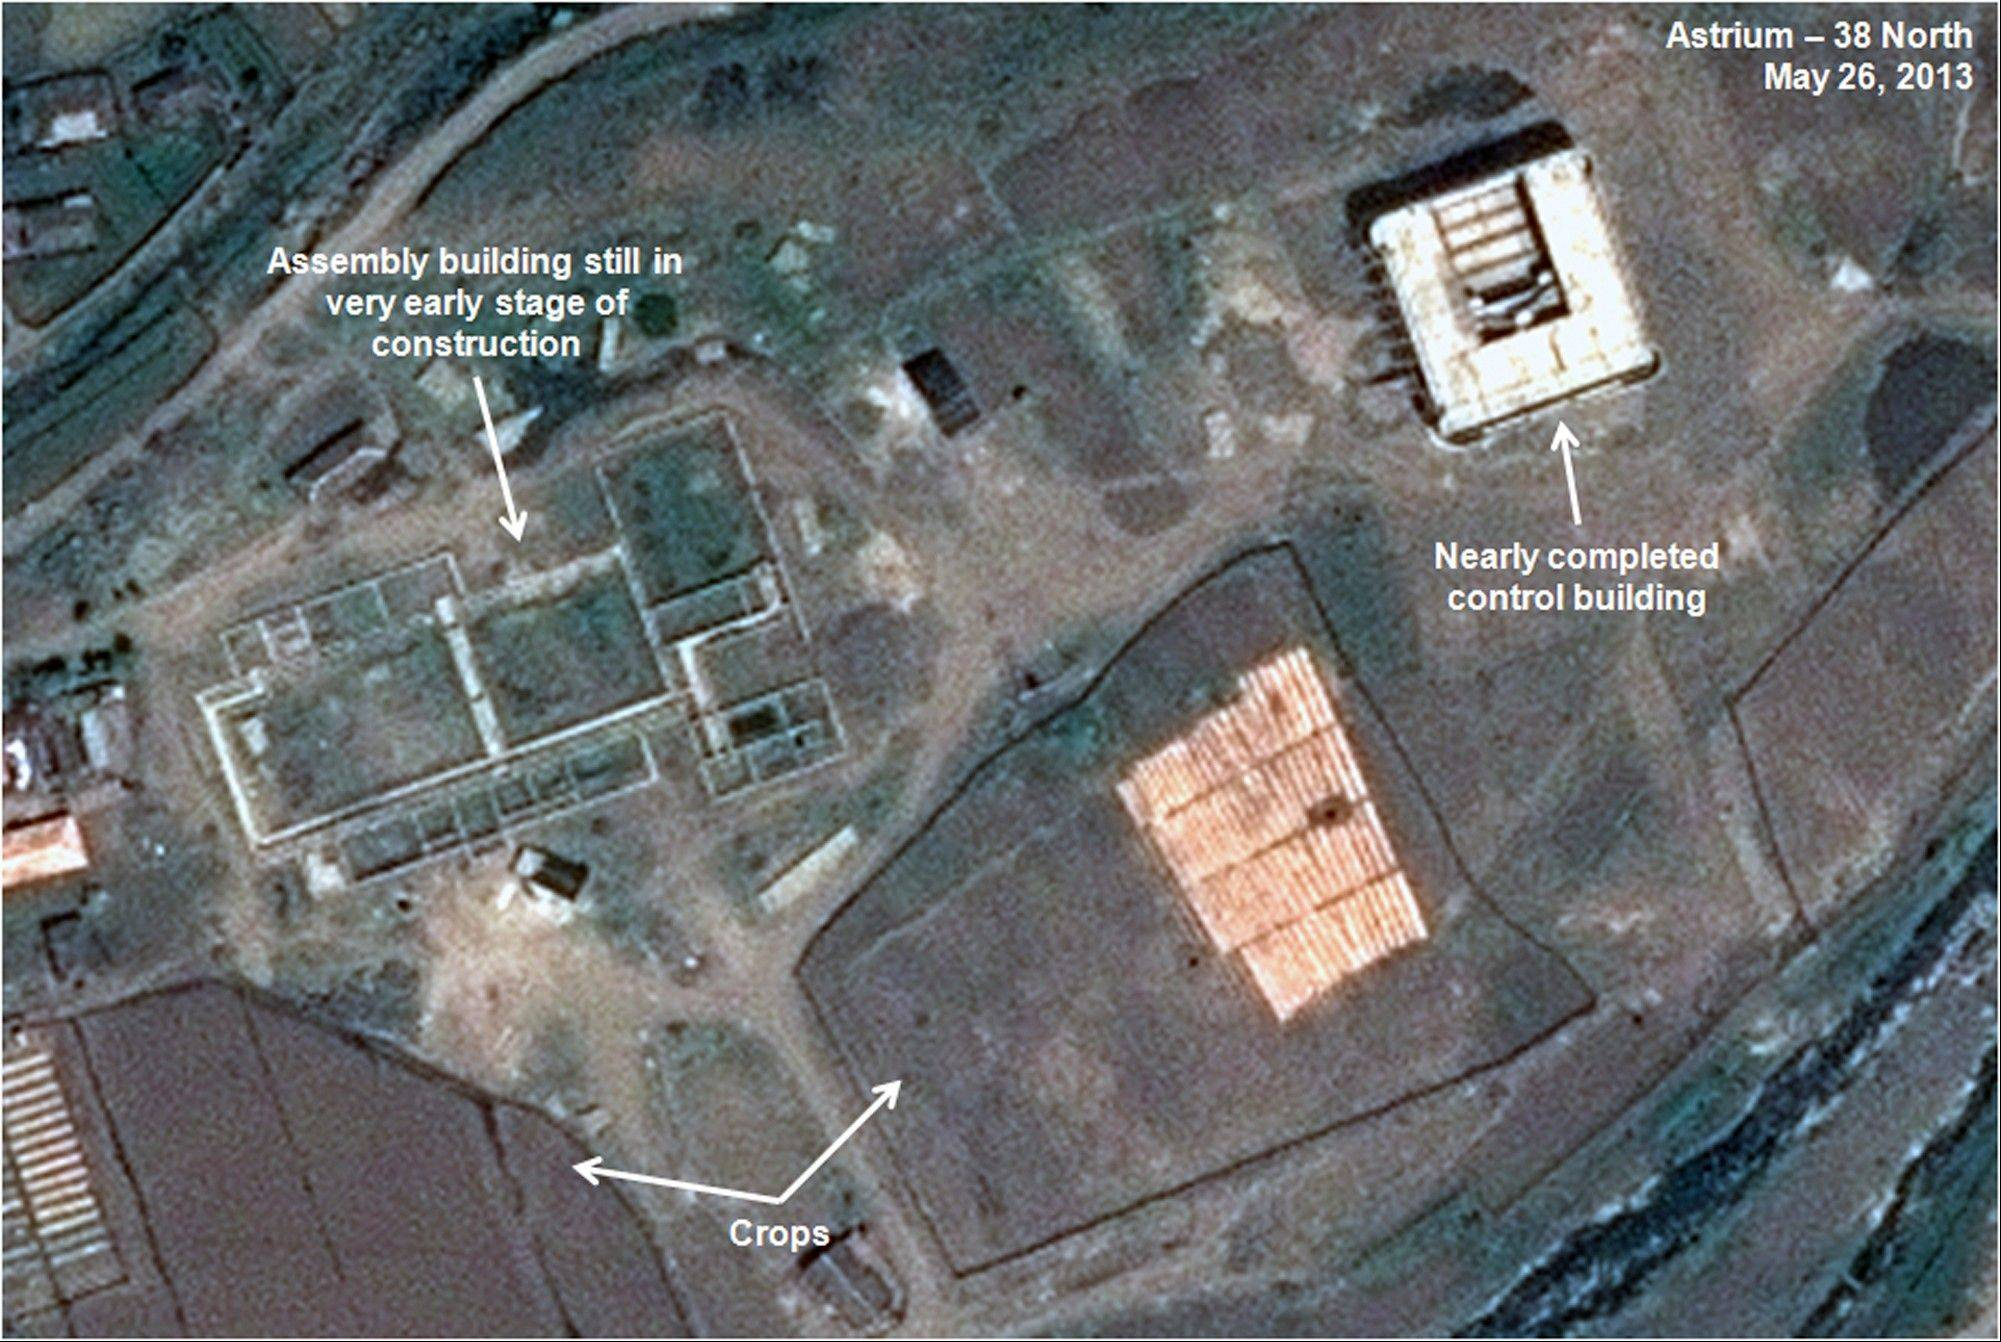 This May 26, 2013, satellite image shows an unfinished new missile assembly building, top left, and control center, top right, at the Tonghae facility in North Korea. An eight-month construction standstill at the North Korean site meant to launch bigger and better long-range rockets may signal Pyongyang is slowing or even stopping development of larger rockets, according to a new analysis of recent satellite imagery. (AP Photo/Astrium -- 38 North) CREDIT MANDATORY